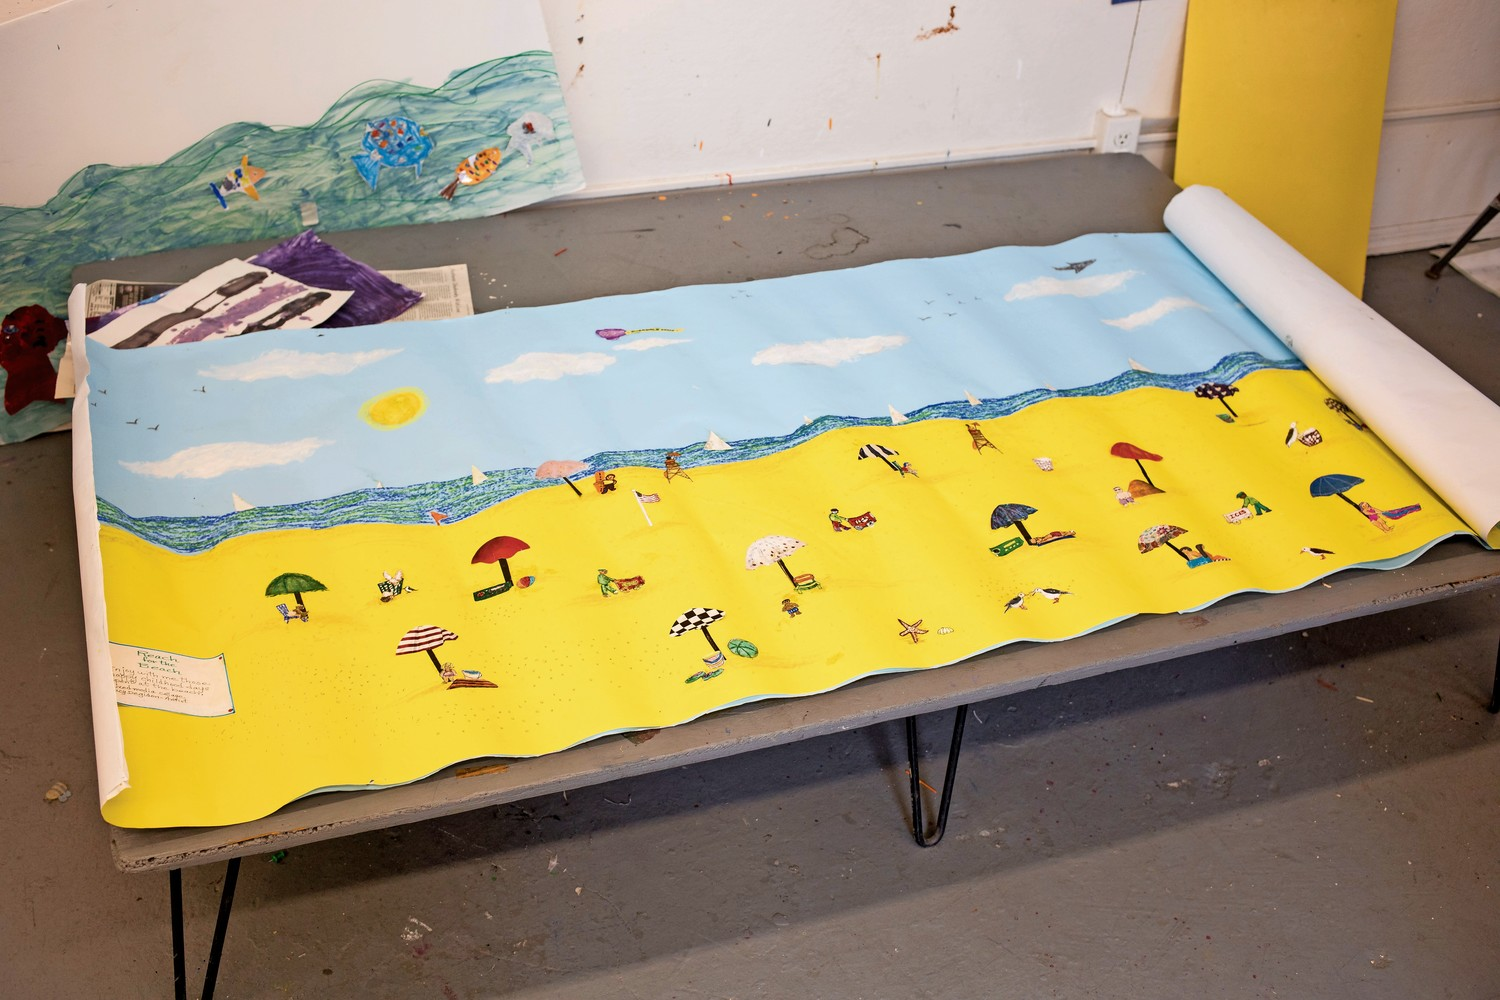 'Reach for the Beach' is a mural Lucy Degidon worked on with students at Amalgamated Nursery School that was informed by her childhood.